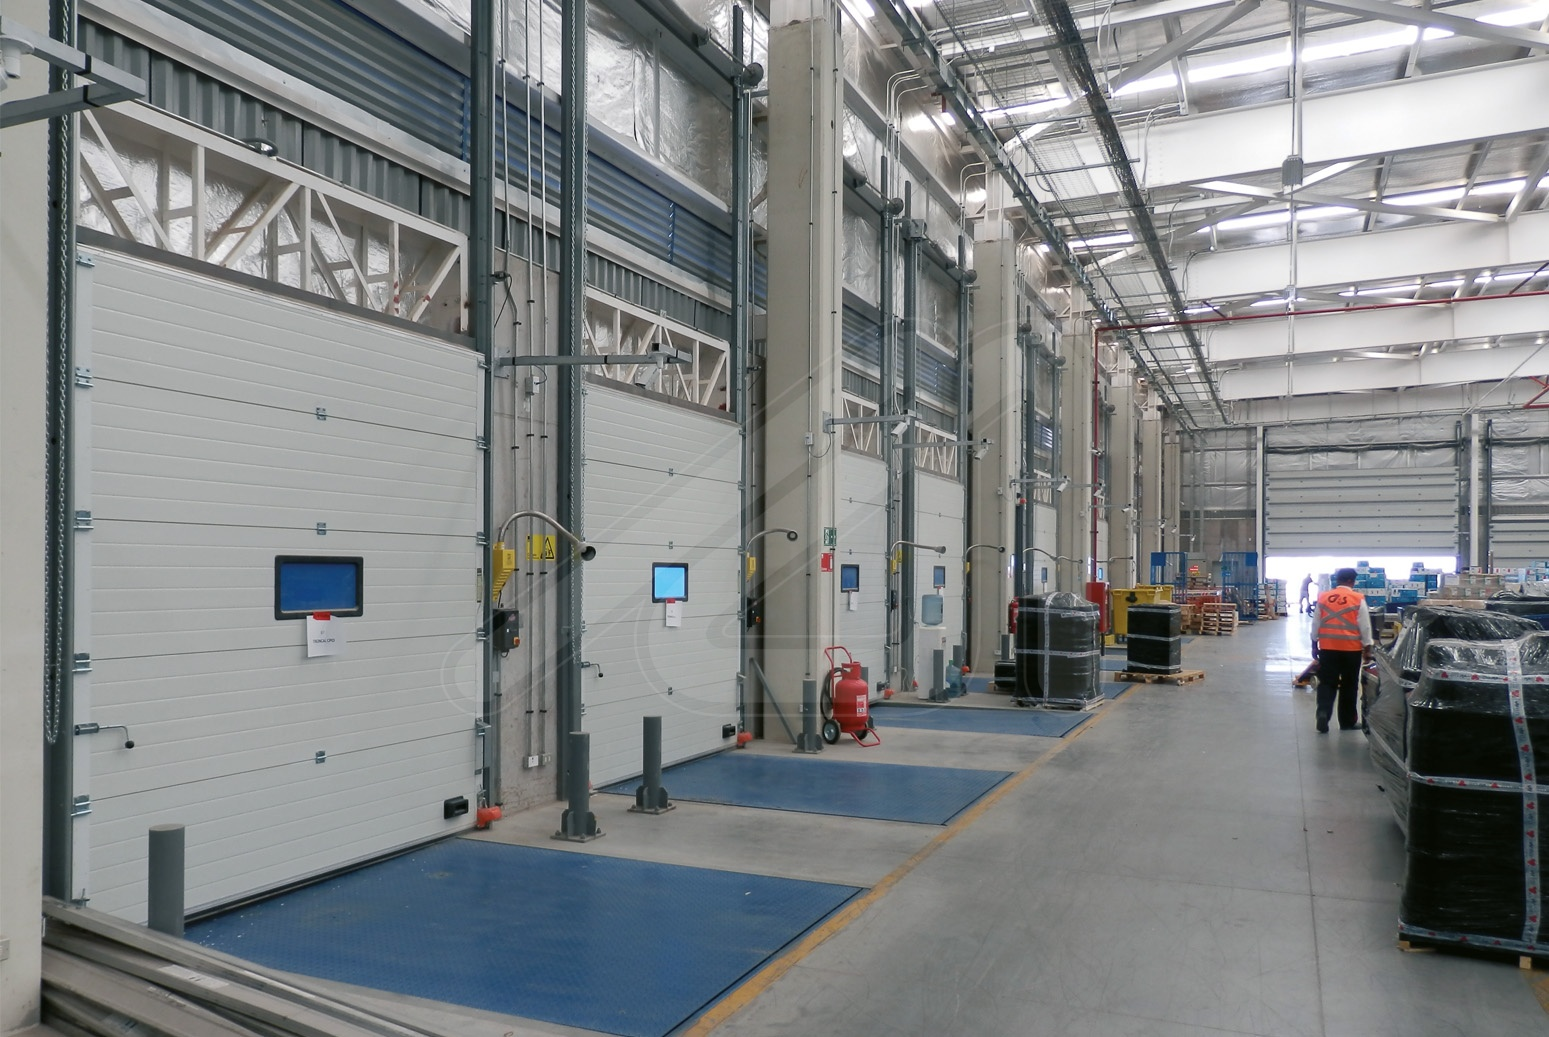 Safety elements for the loading dock